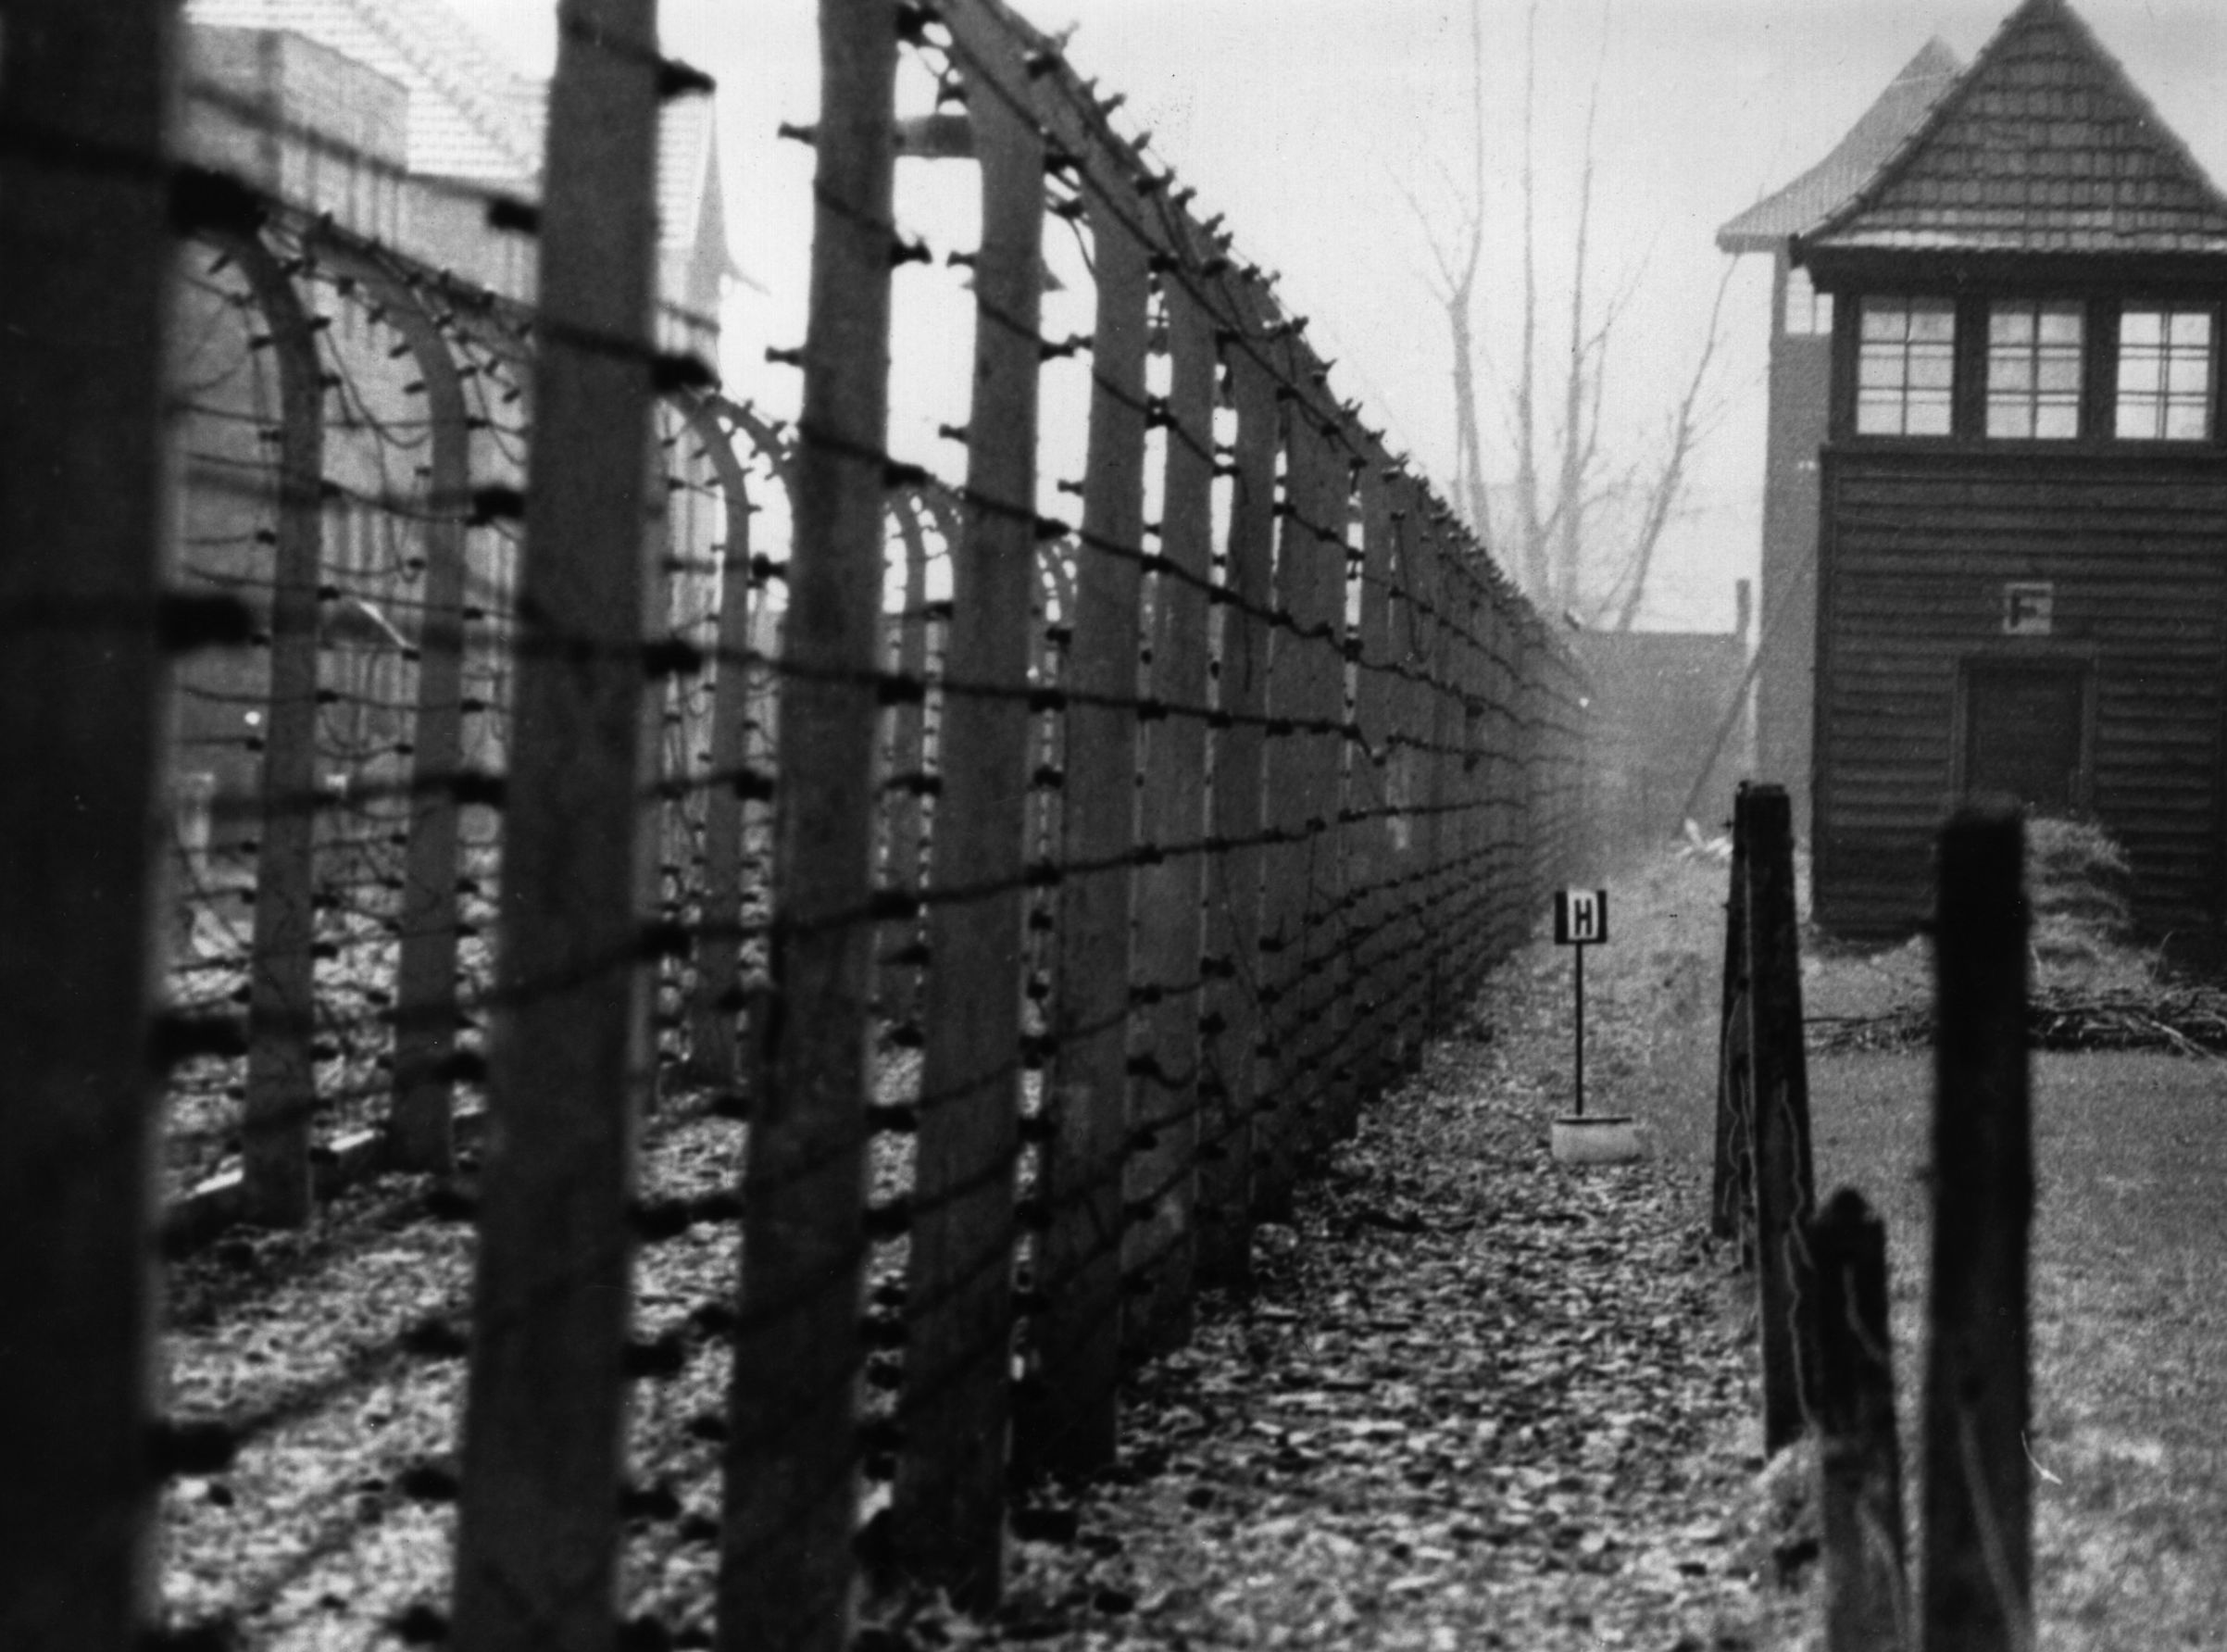 circa 1955:  The perimeter fence of the Nazi concentration camp at Auschwitz.